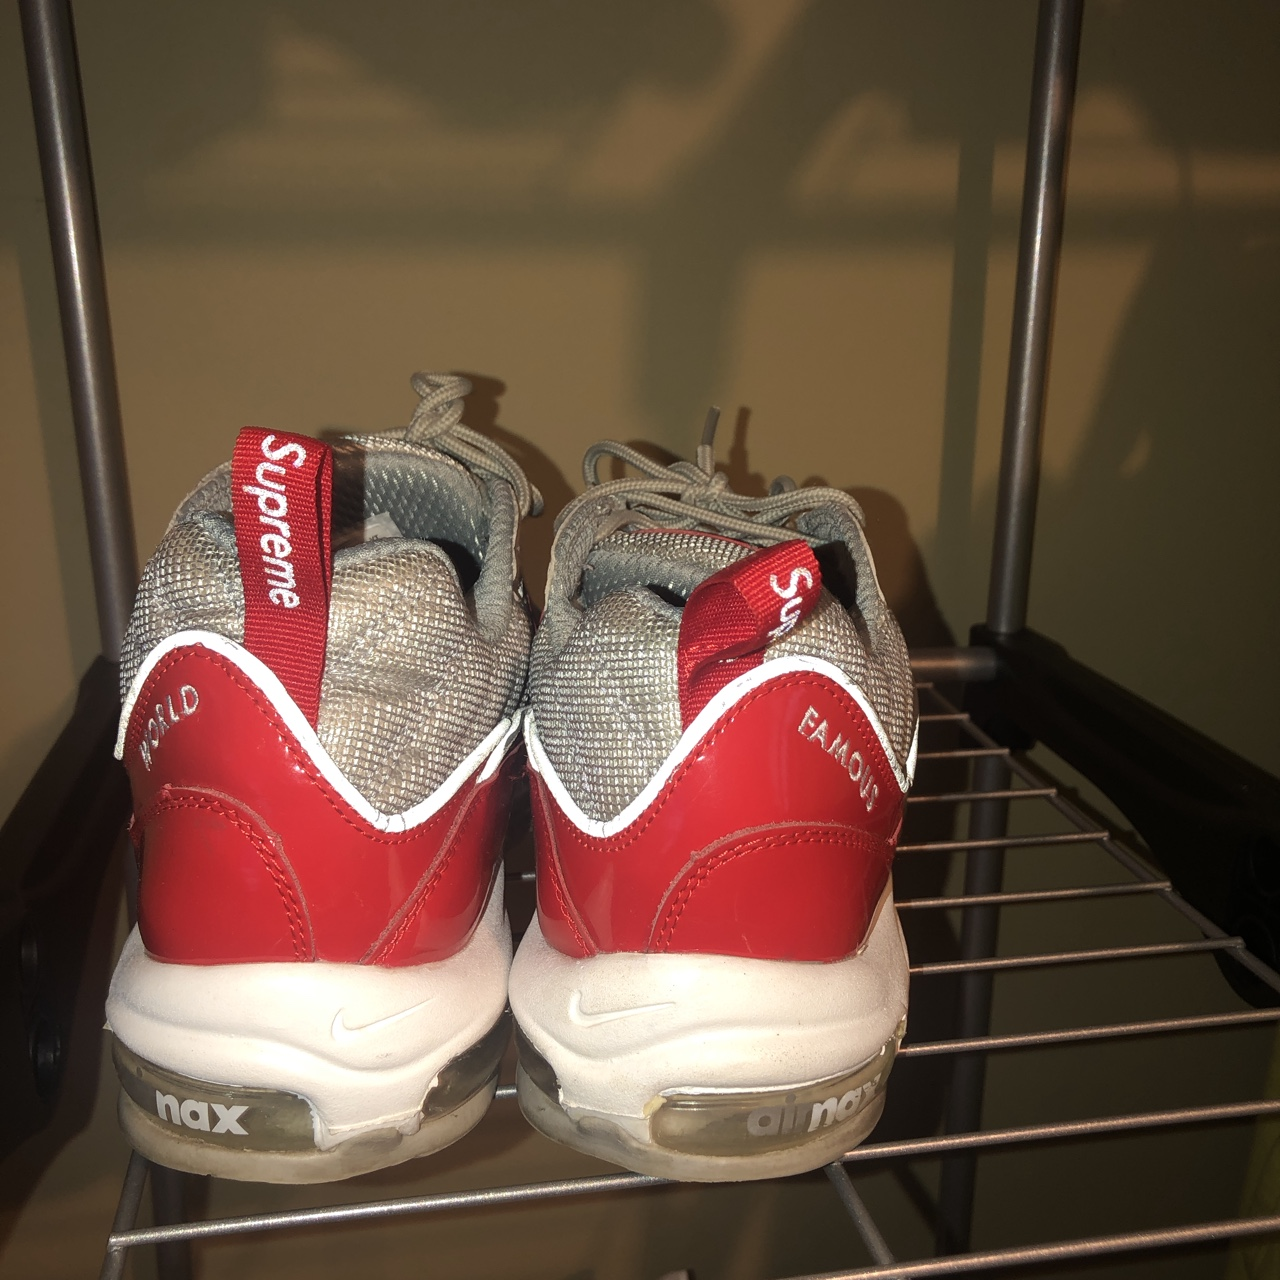 low priced d4dfe d8907 SUPREME NIKE AIR MAX 98 REP GREAT QUALITY EXACT... - Depop